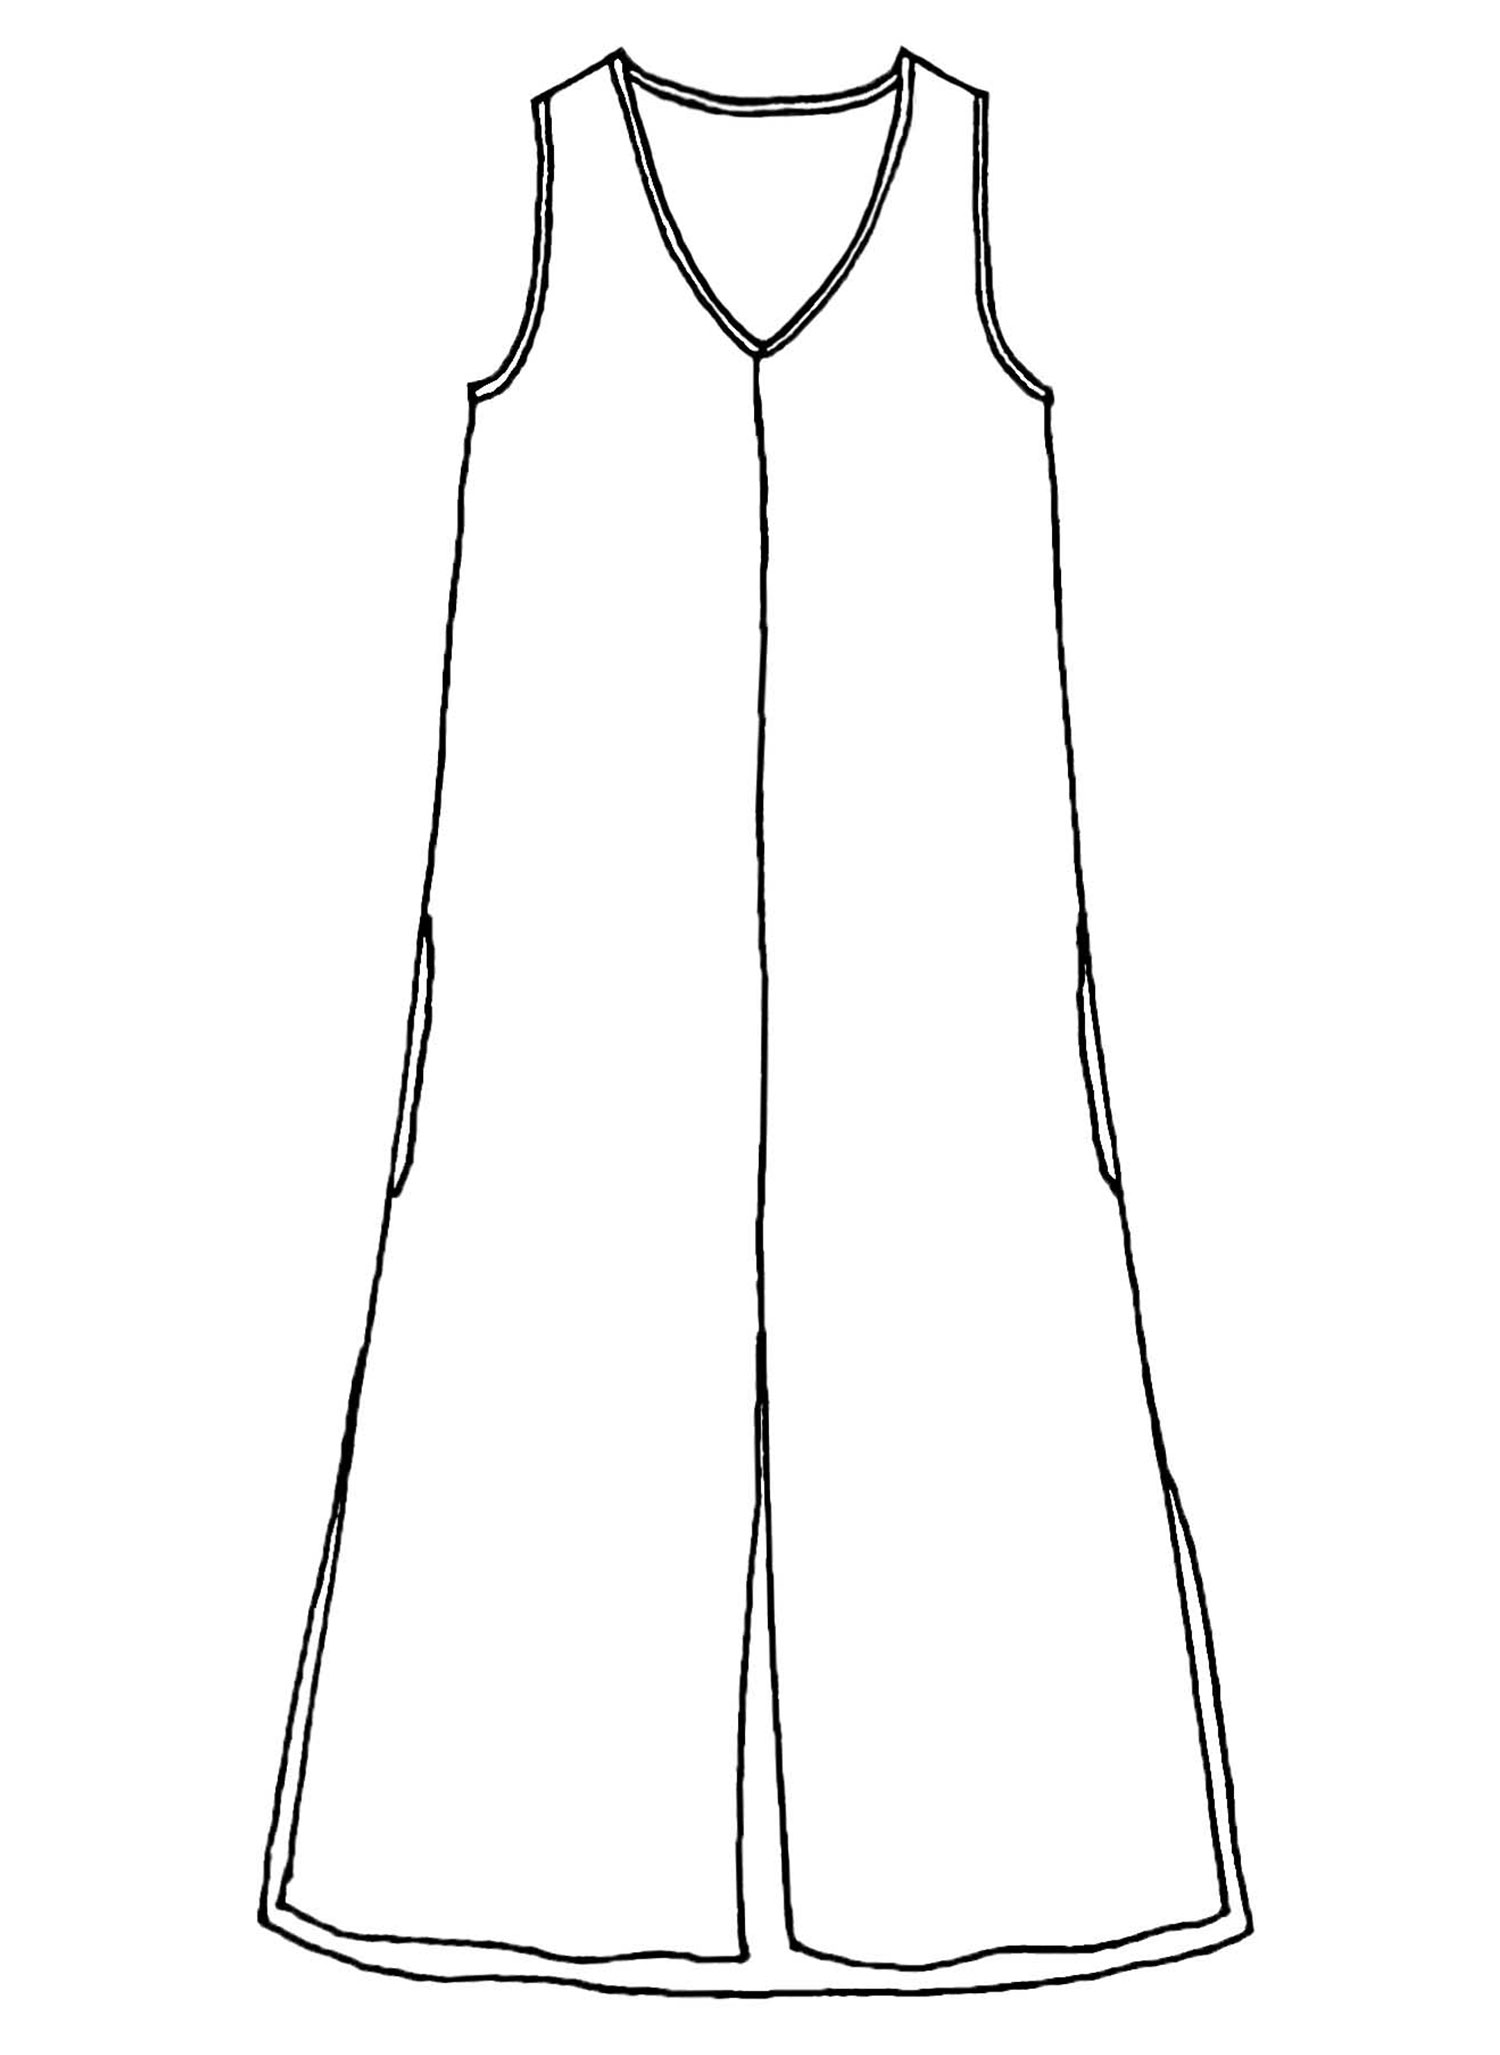 Open Dress sketch image